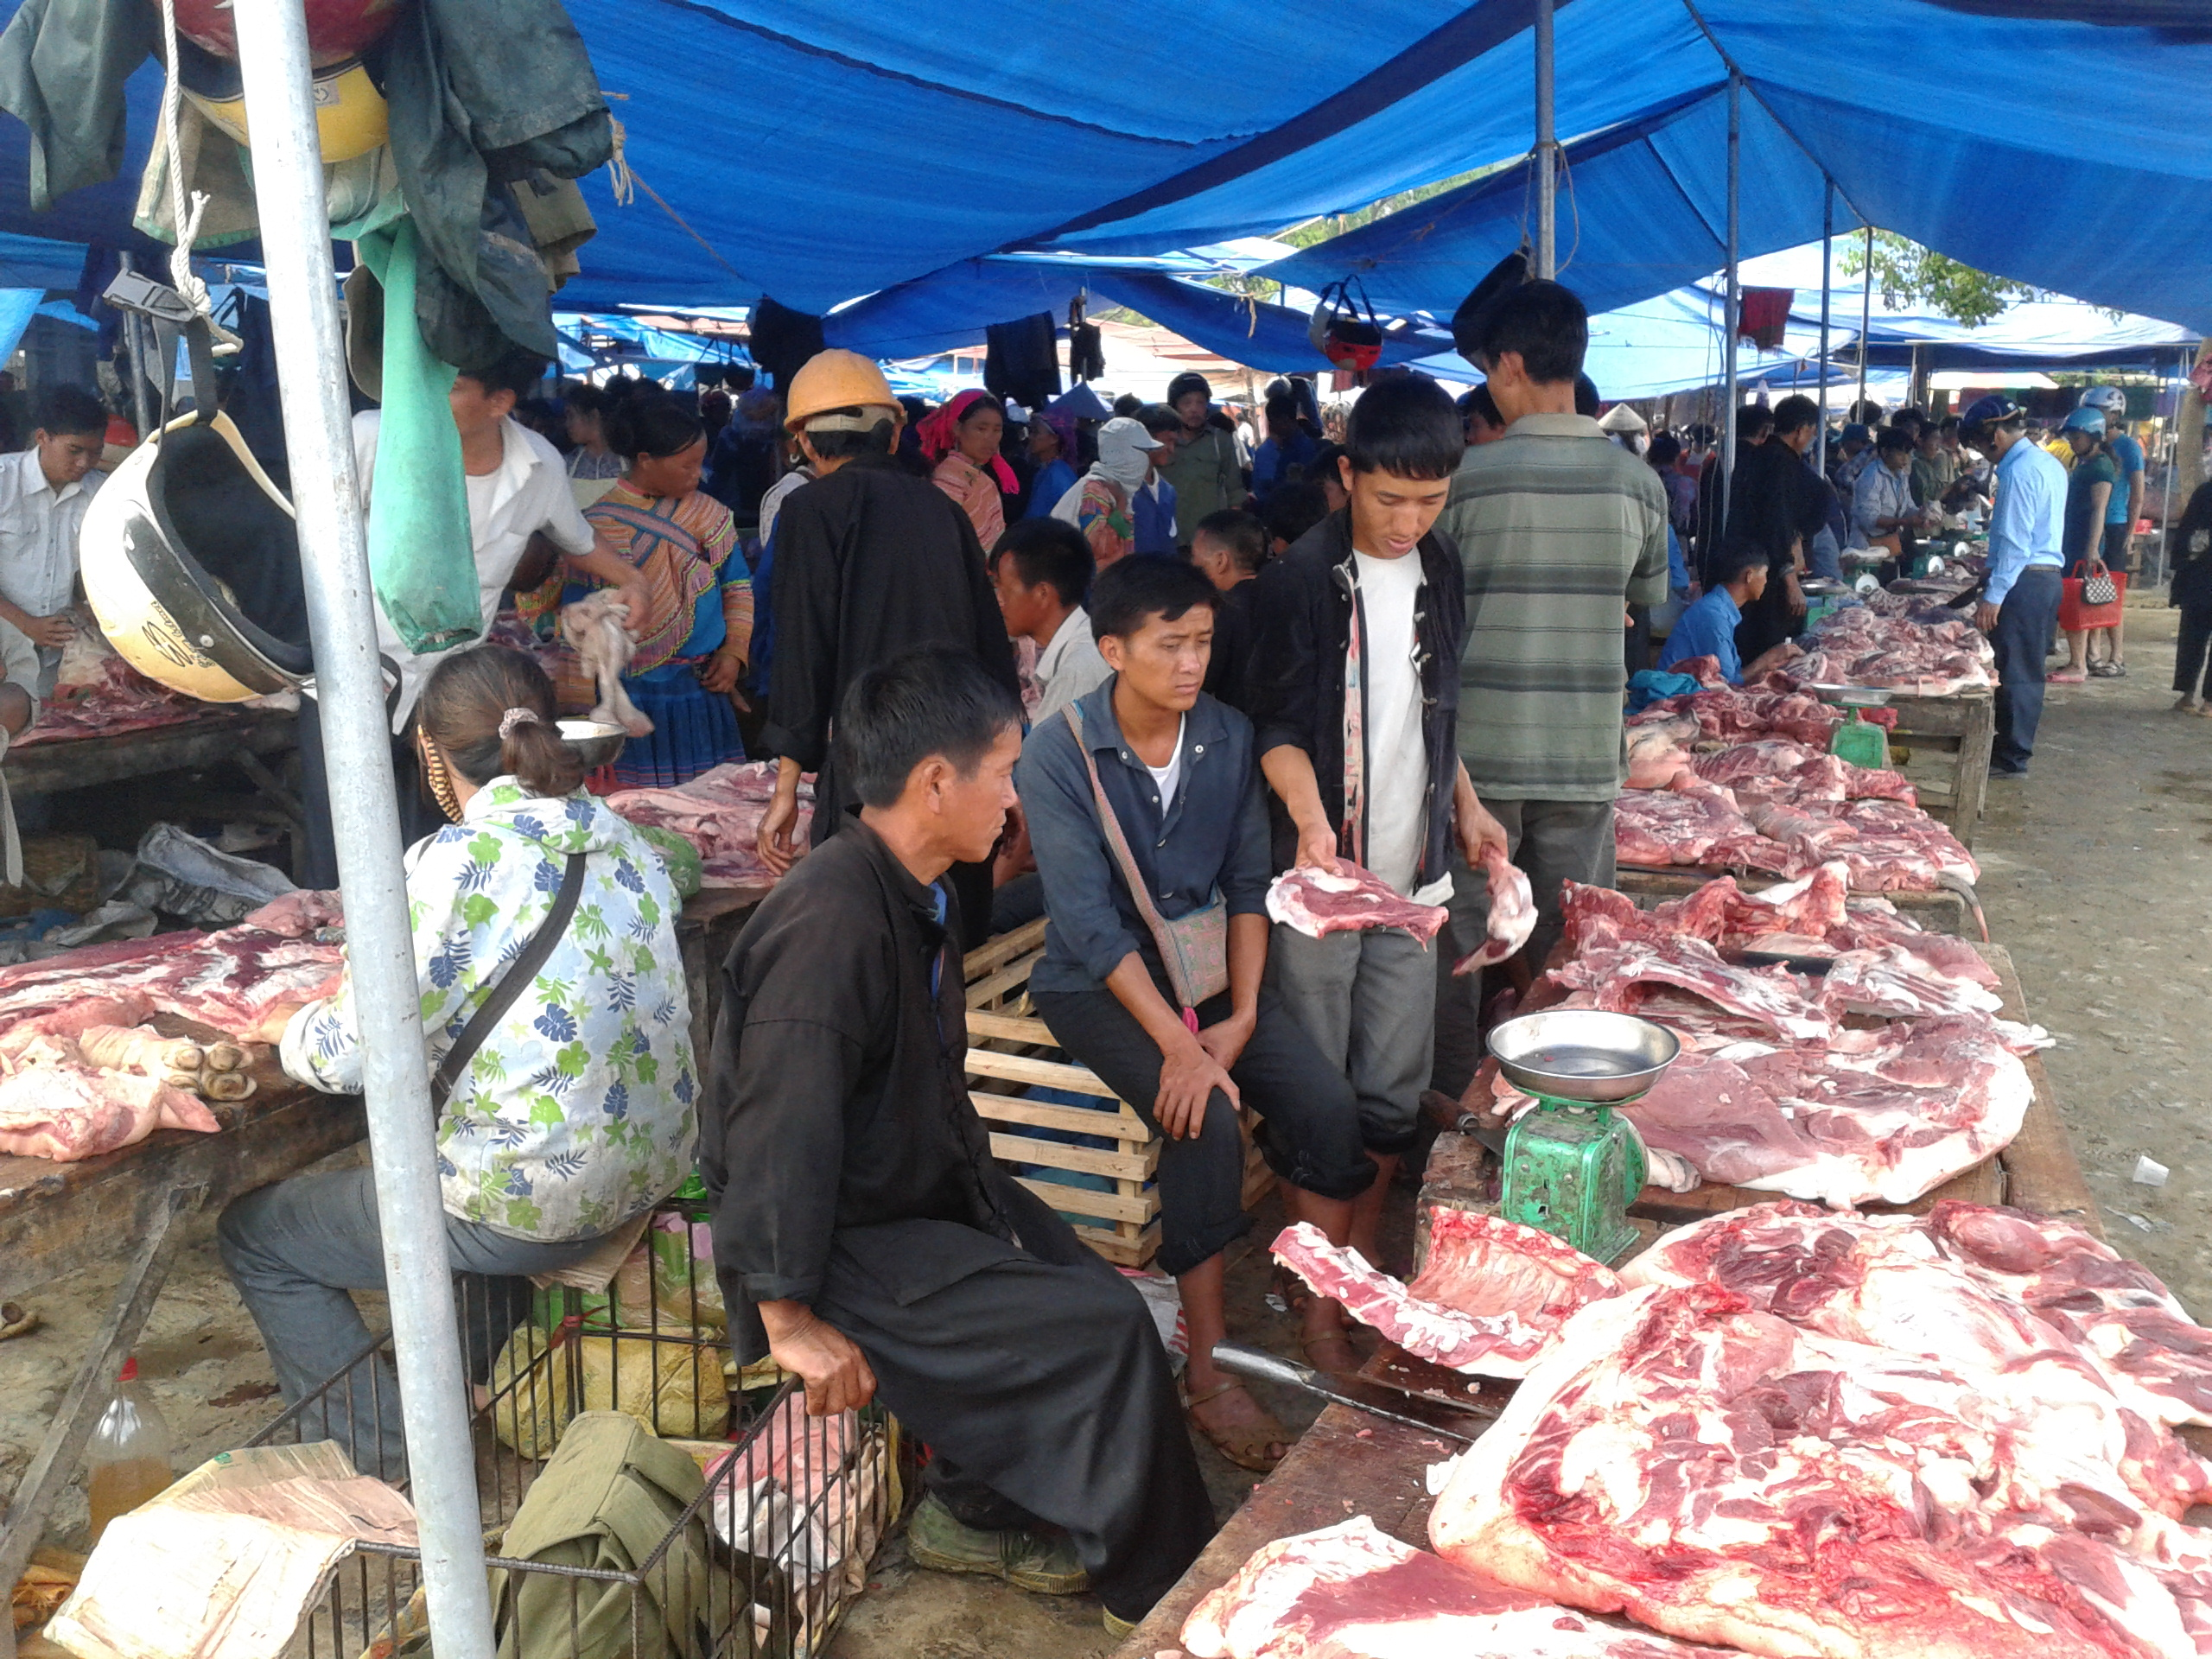 Hmong butchers sitting at market stalls with meat from the indigenous Hmong black pig laid out on tables for sale.